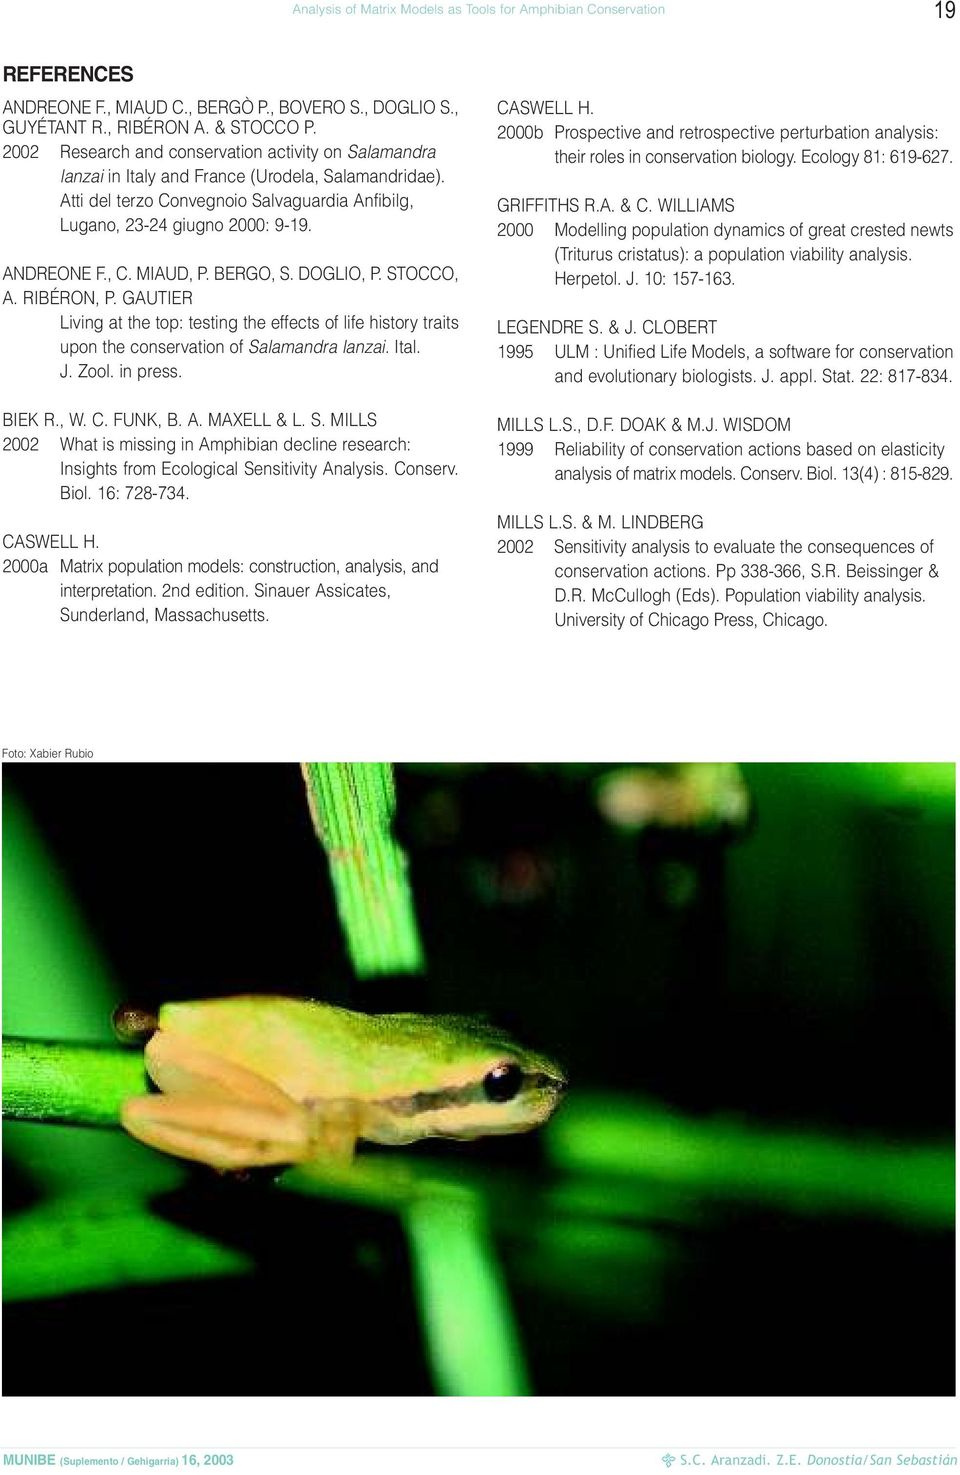 , C. MIAUD, P. BERGO, S. DOGLIO, P. STOCCO, A. RIBÉRON, P. GAUTIER Living at the top: testing the effects of life history traits upon the conservation of Salamandra lanzai. Ital. J. Zool. in press.